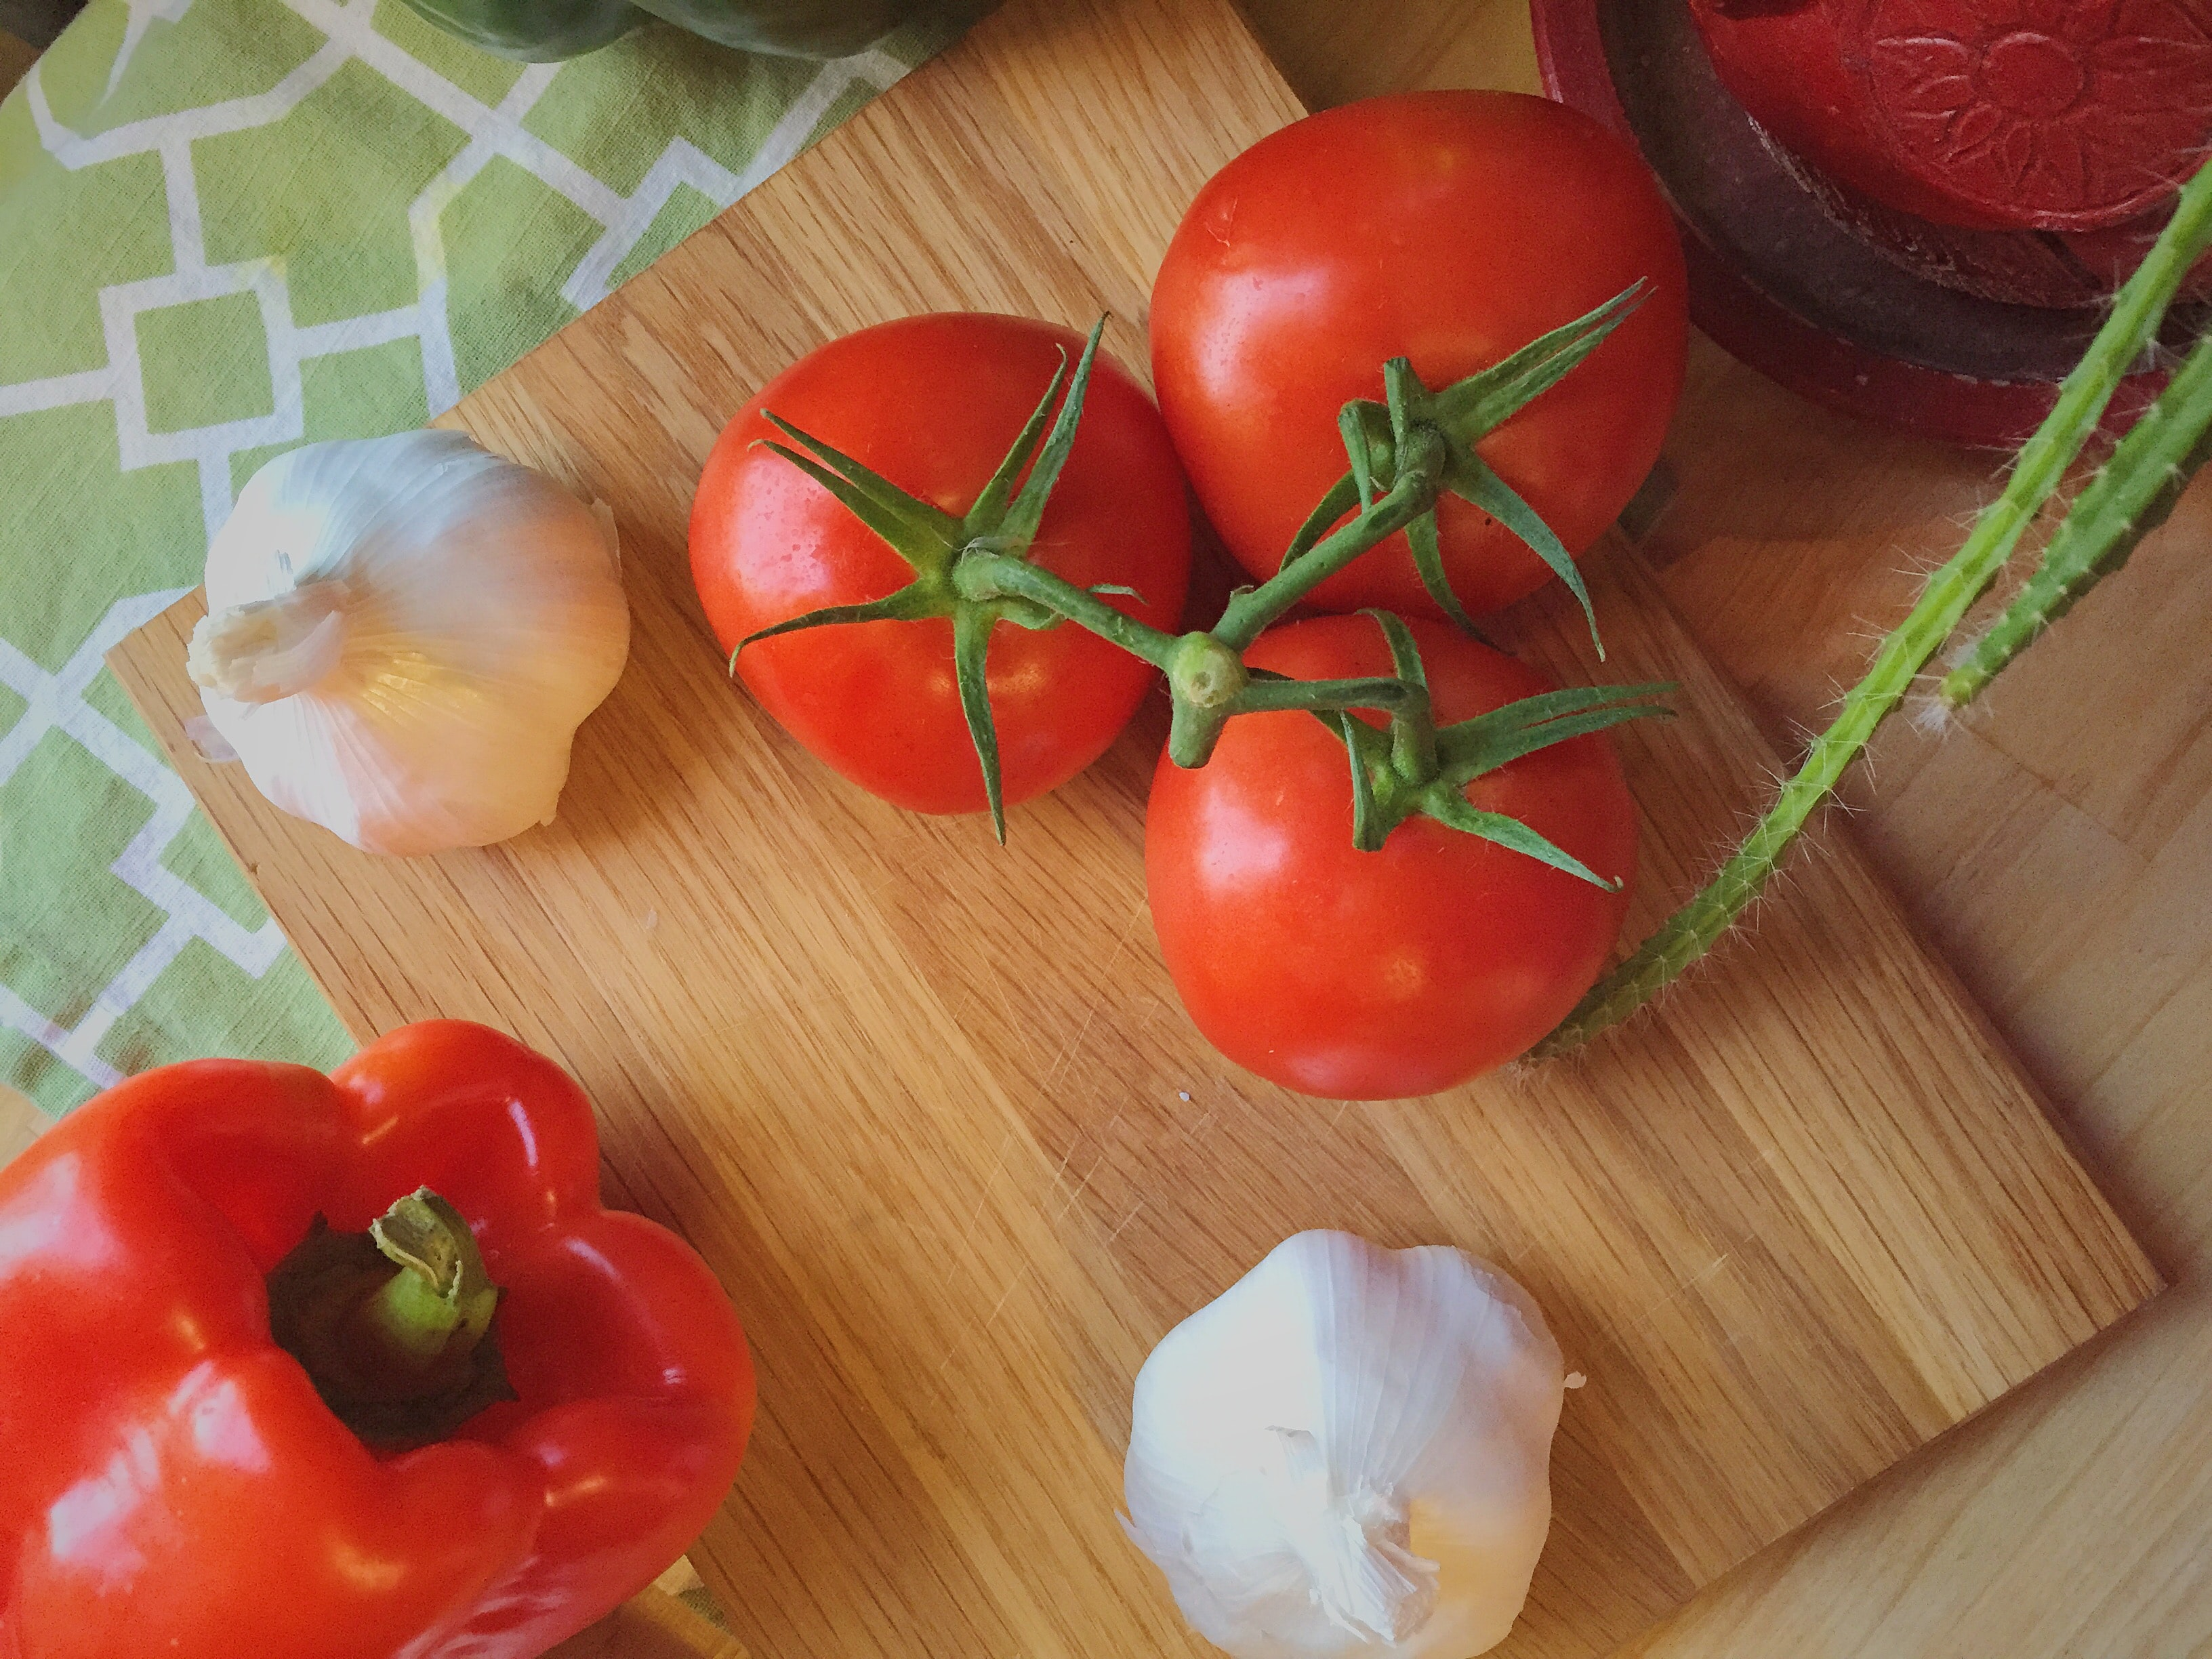 Fresh tomatoes, garlic, and peppers on a cutting board